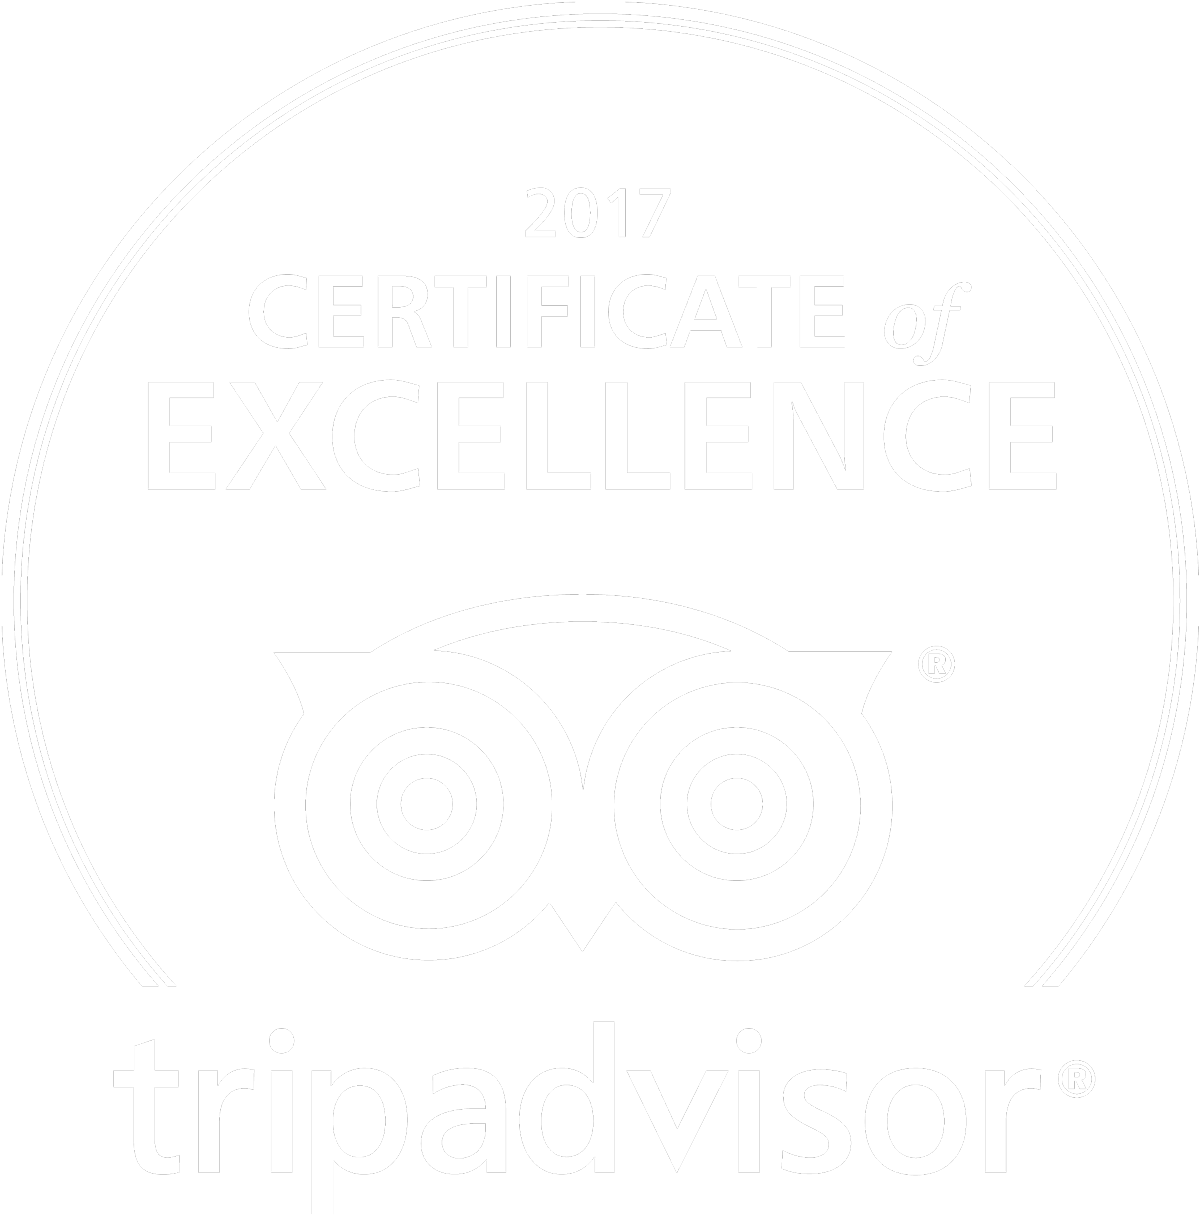 TripAdvisor 2017 certificate of excellent